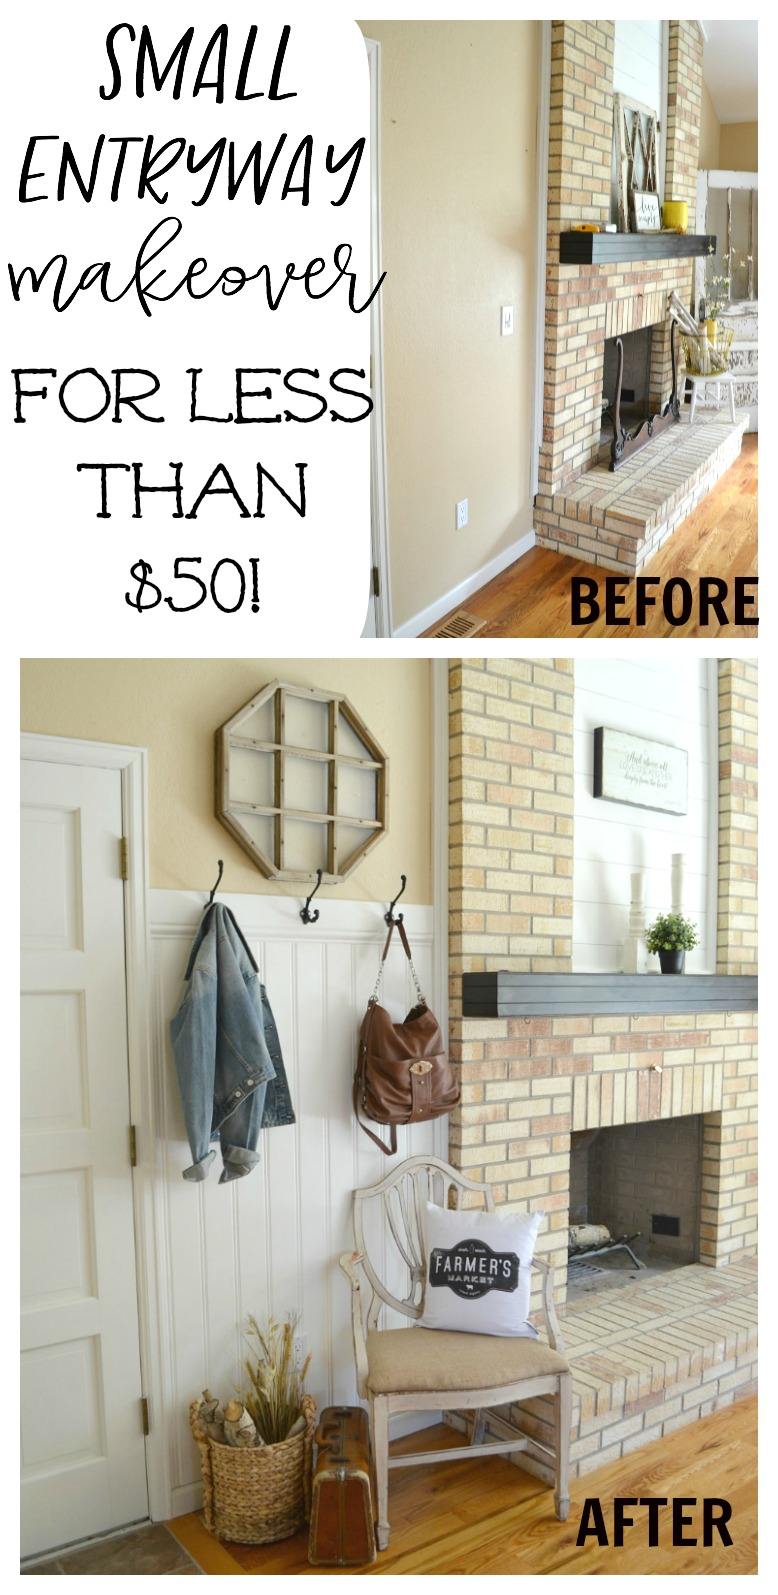 Small front entryway makeover for less than $50